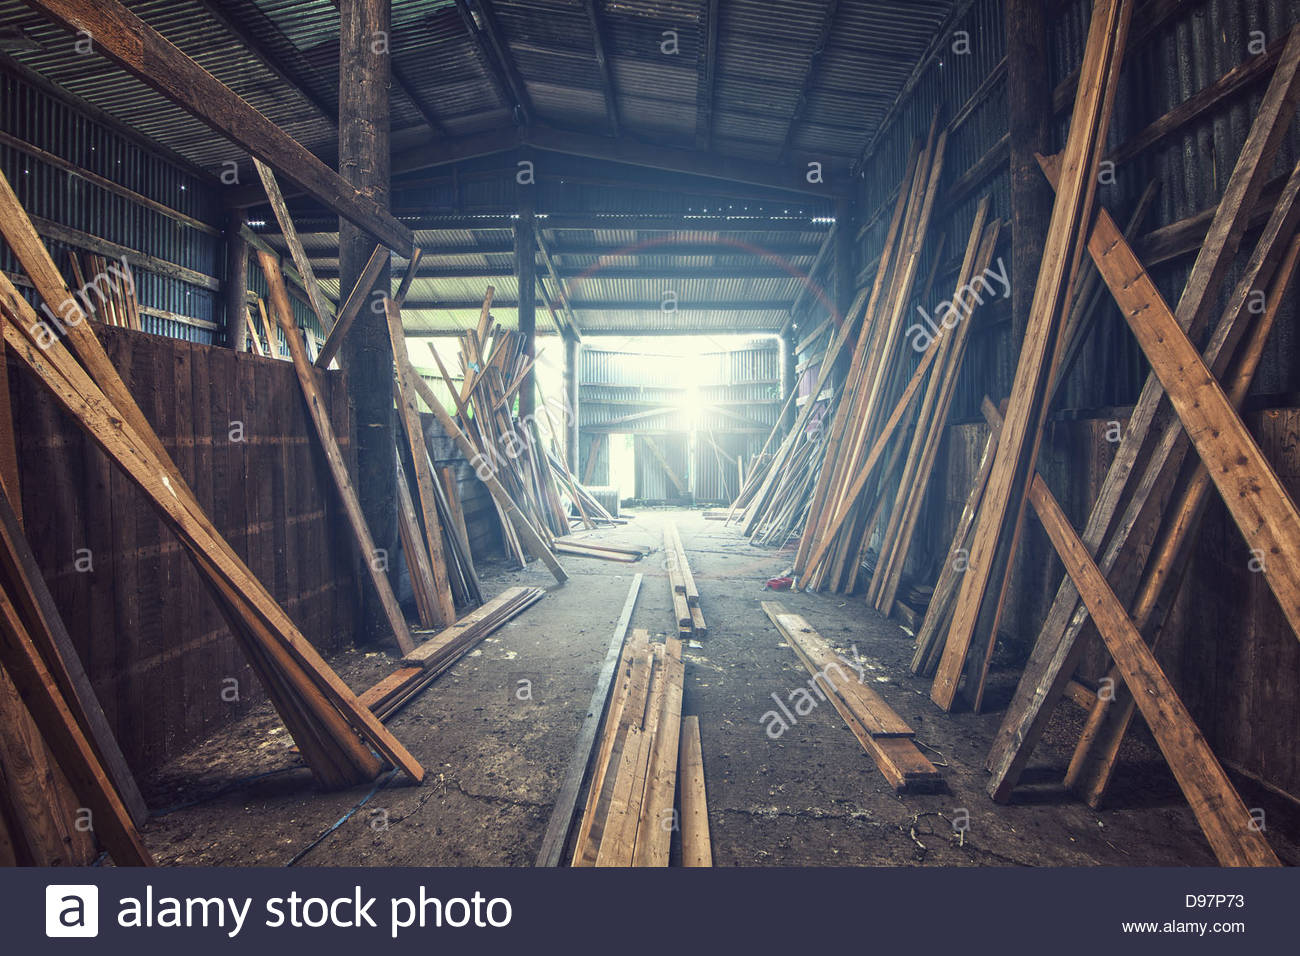 timber yard Stock Photo